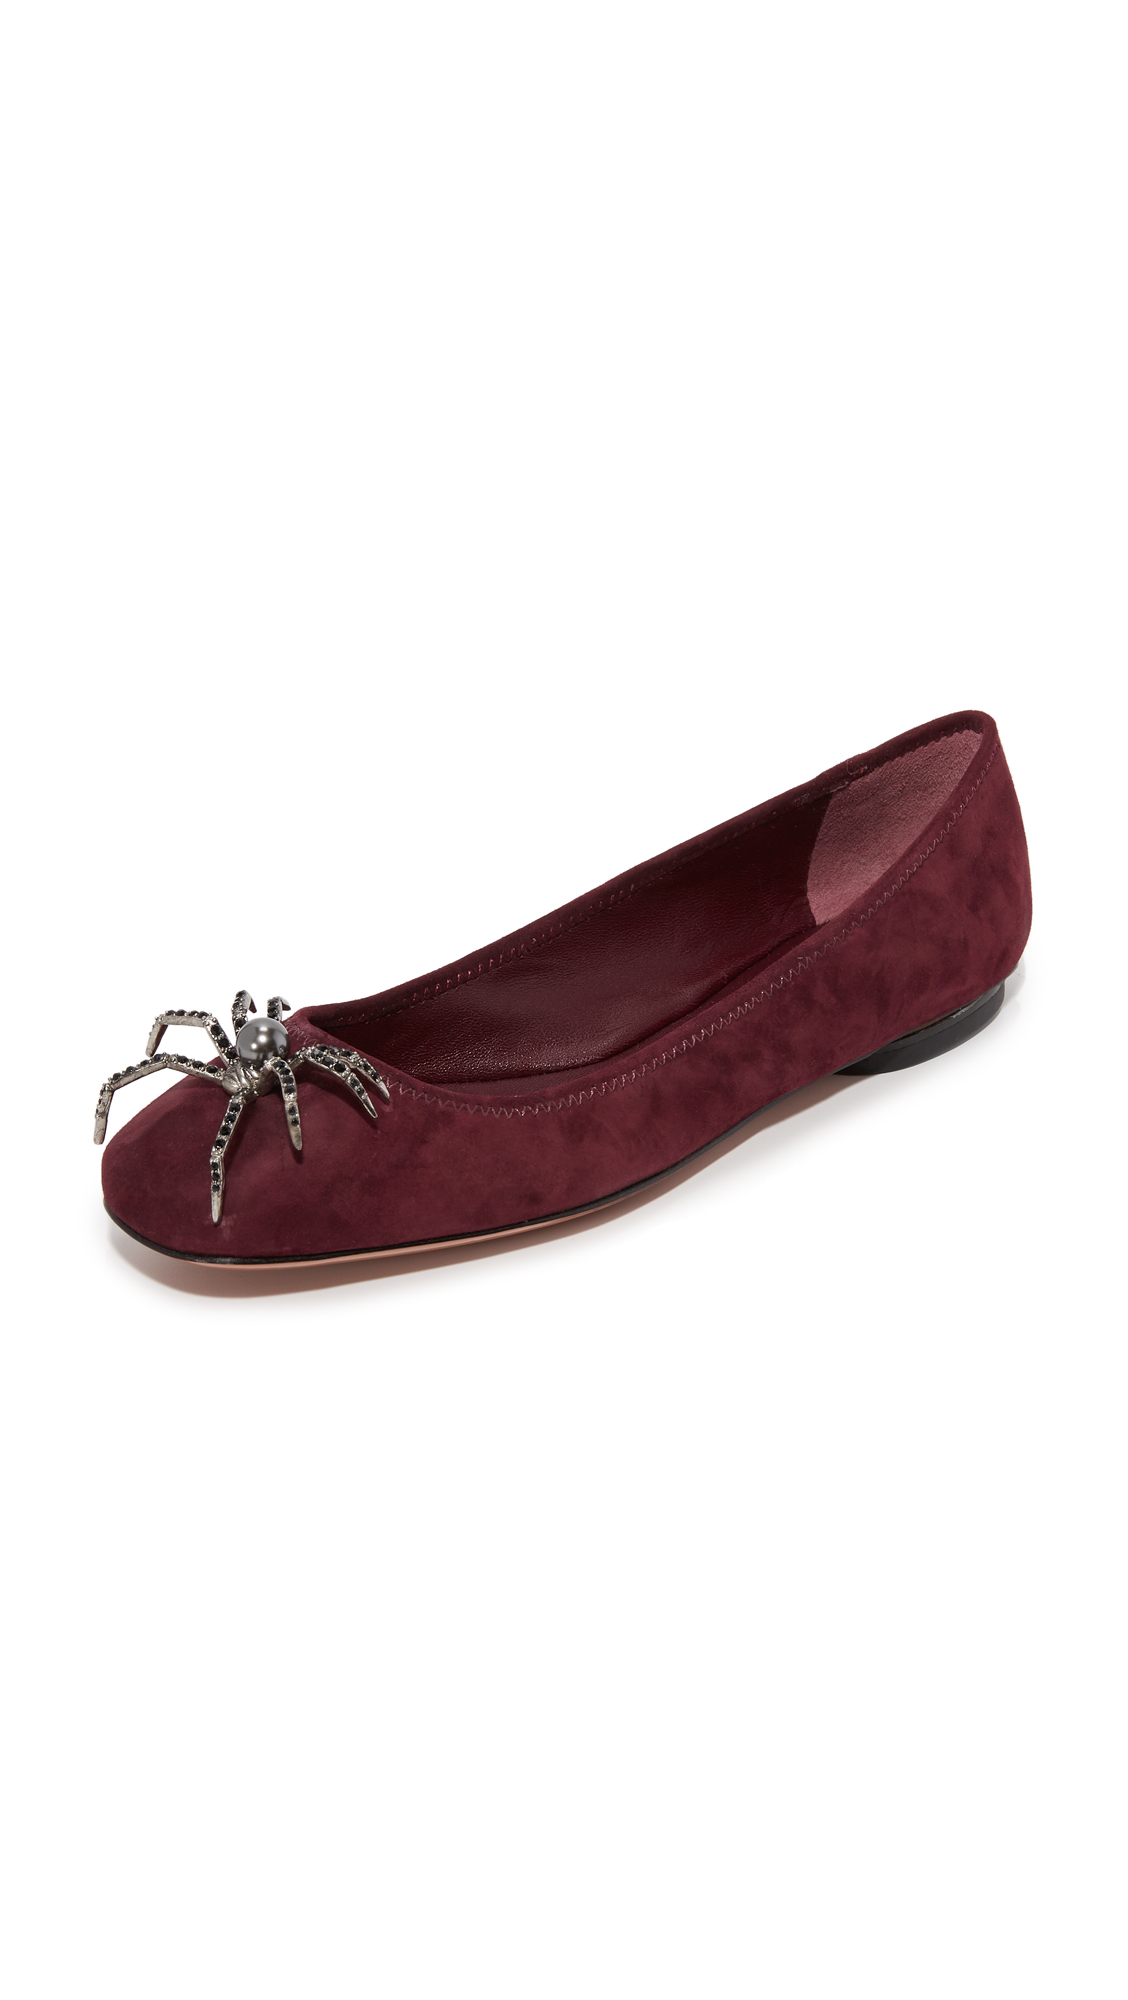 Marc Jacobs Molly Spider Flats - Bordeaux